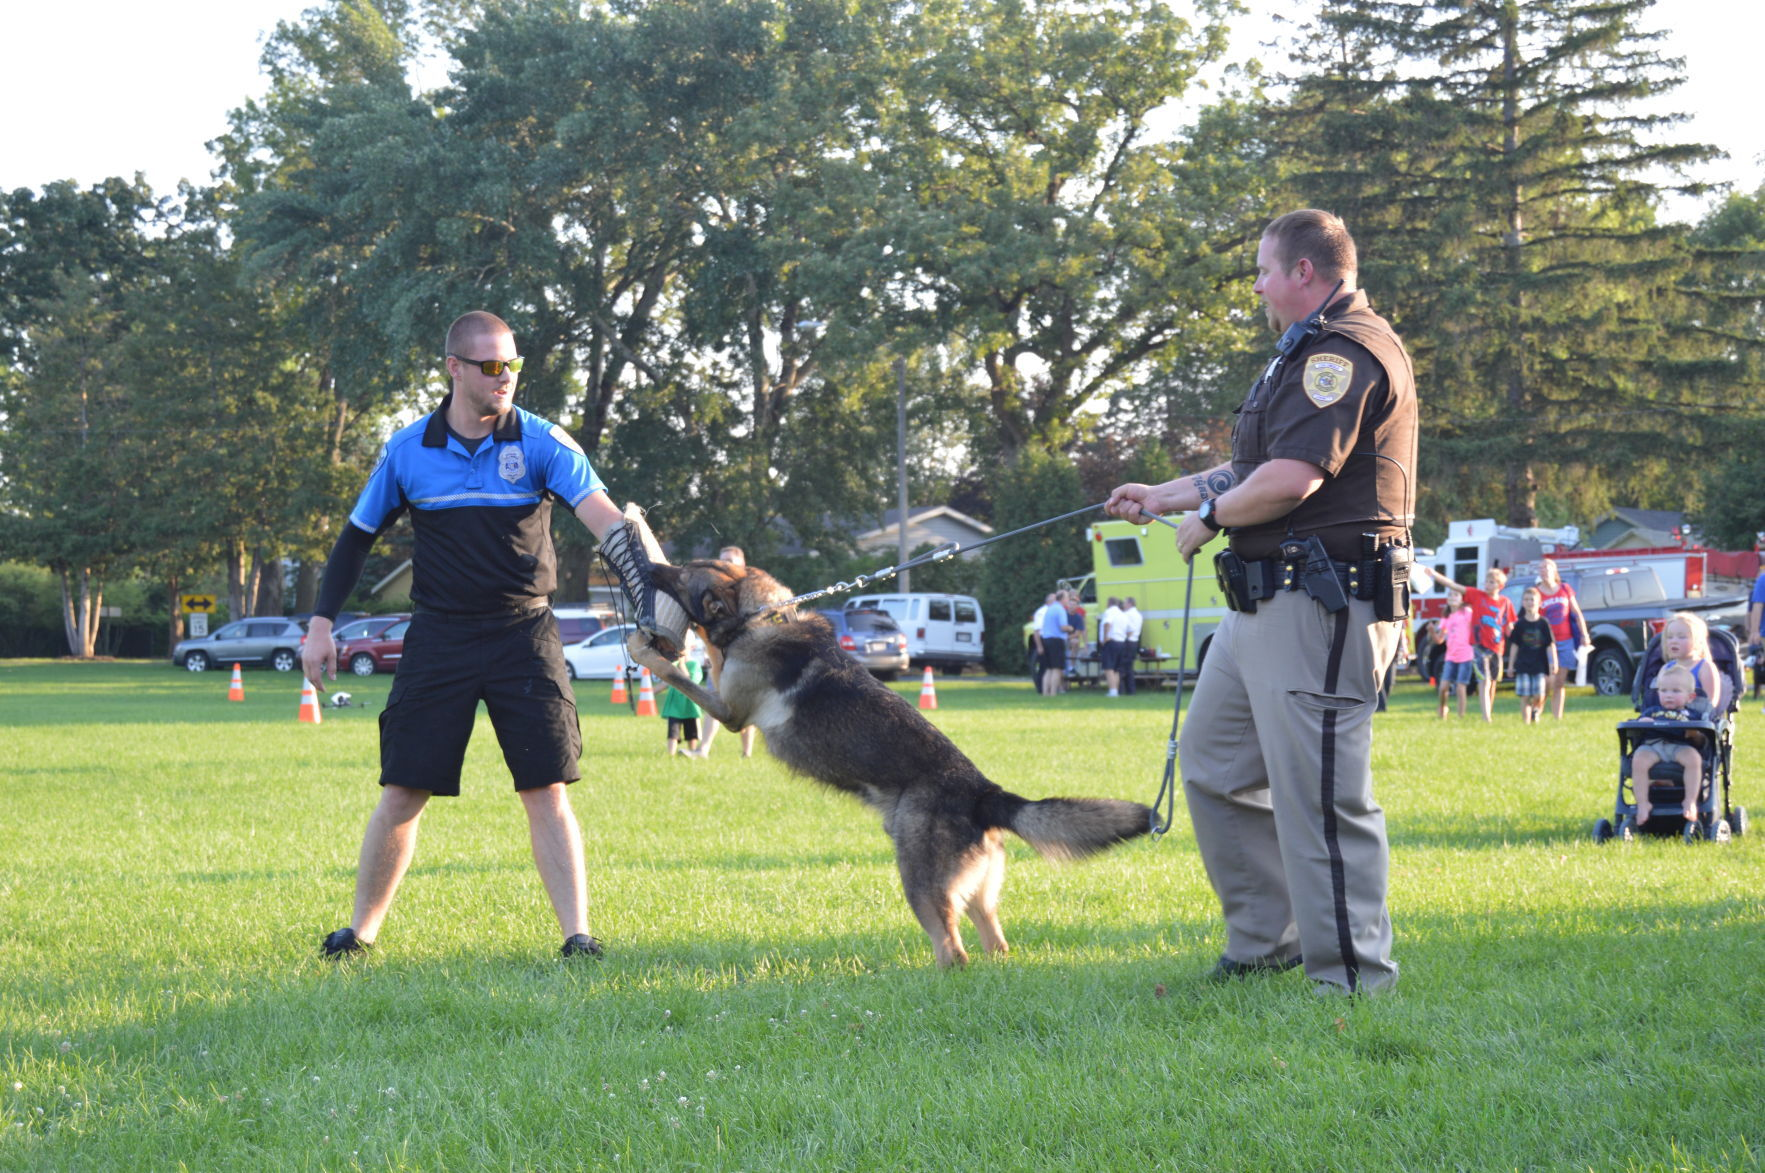 Ripon Police will celebrate 'Night Out' with free food, games